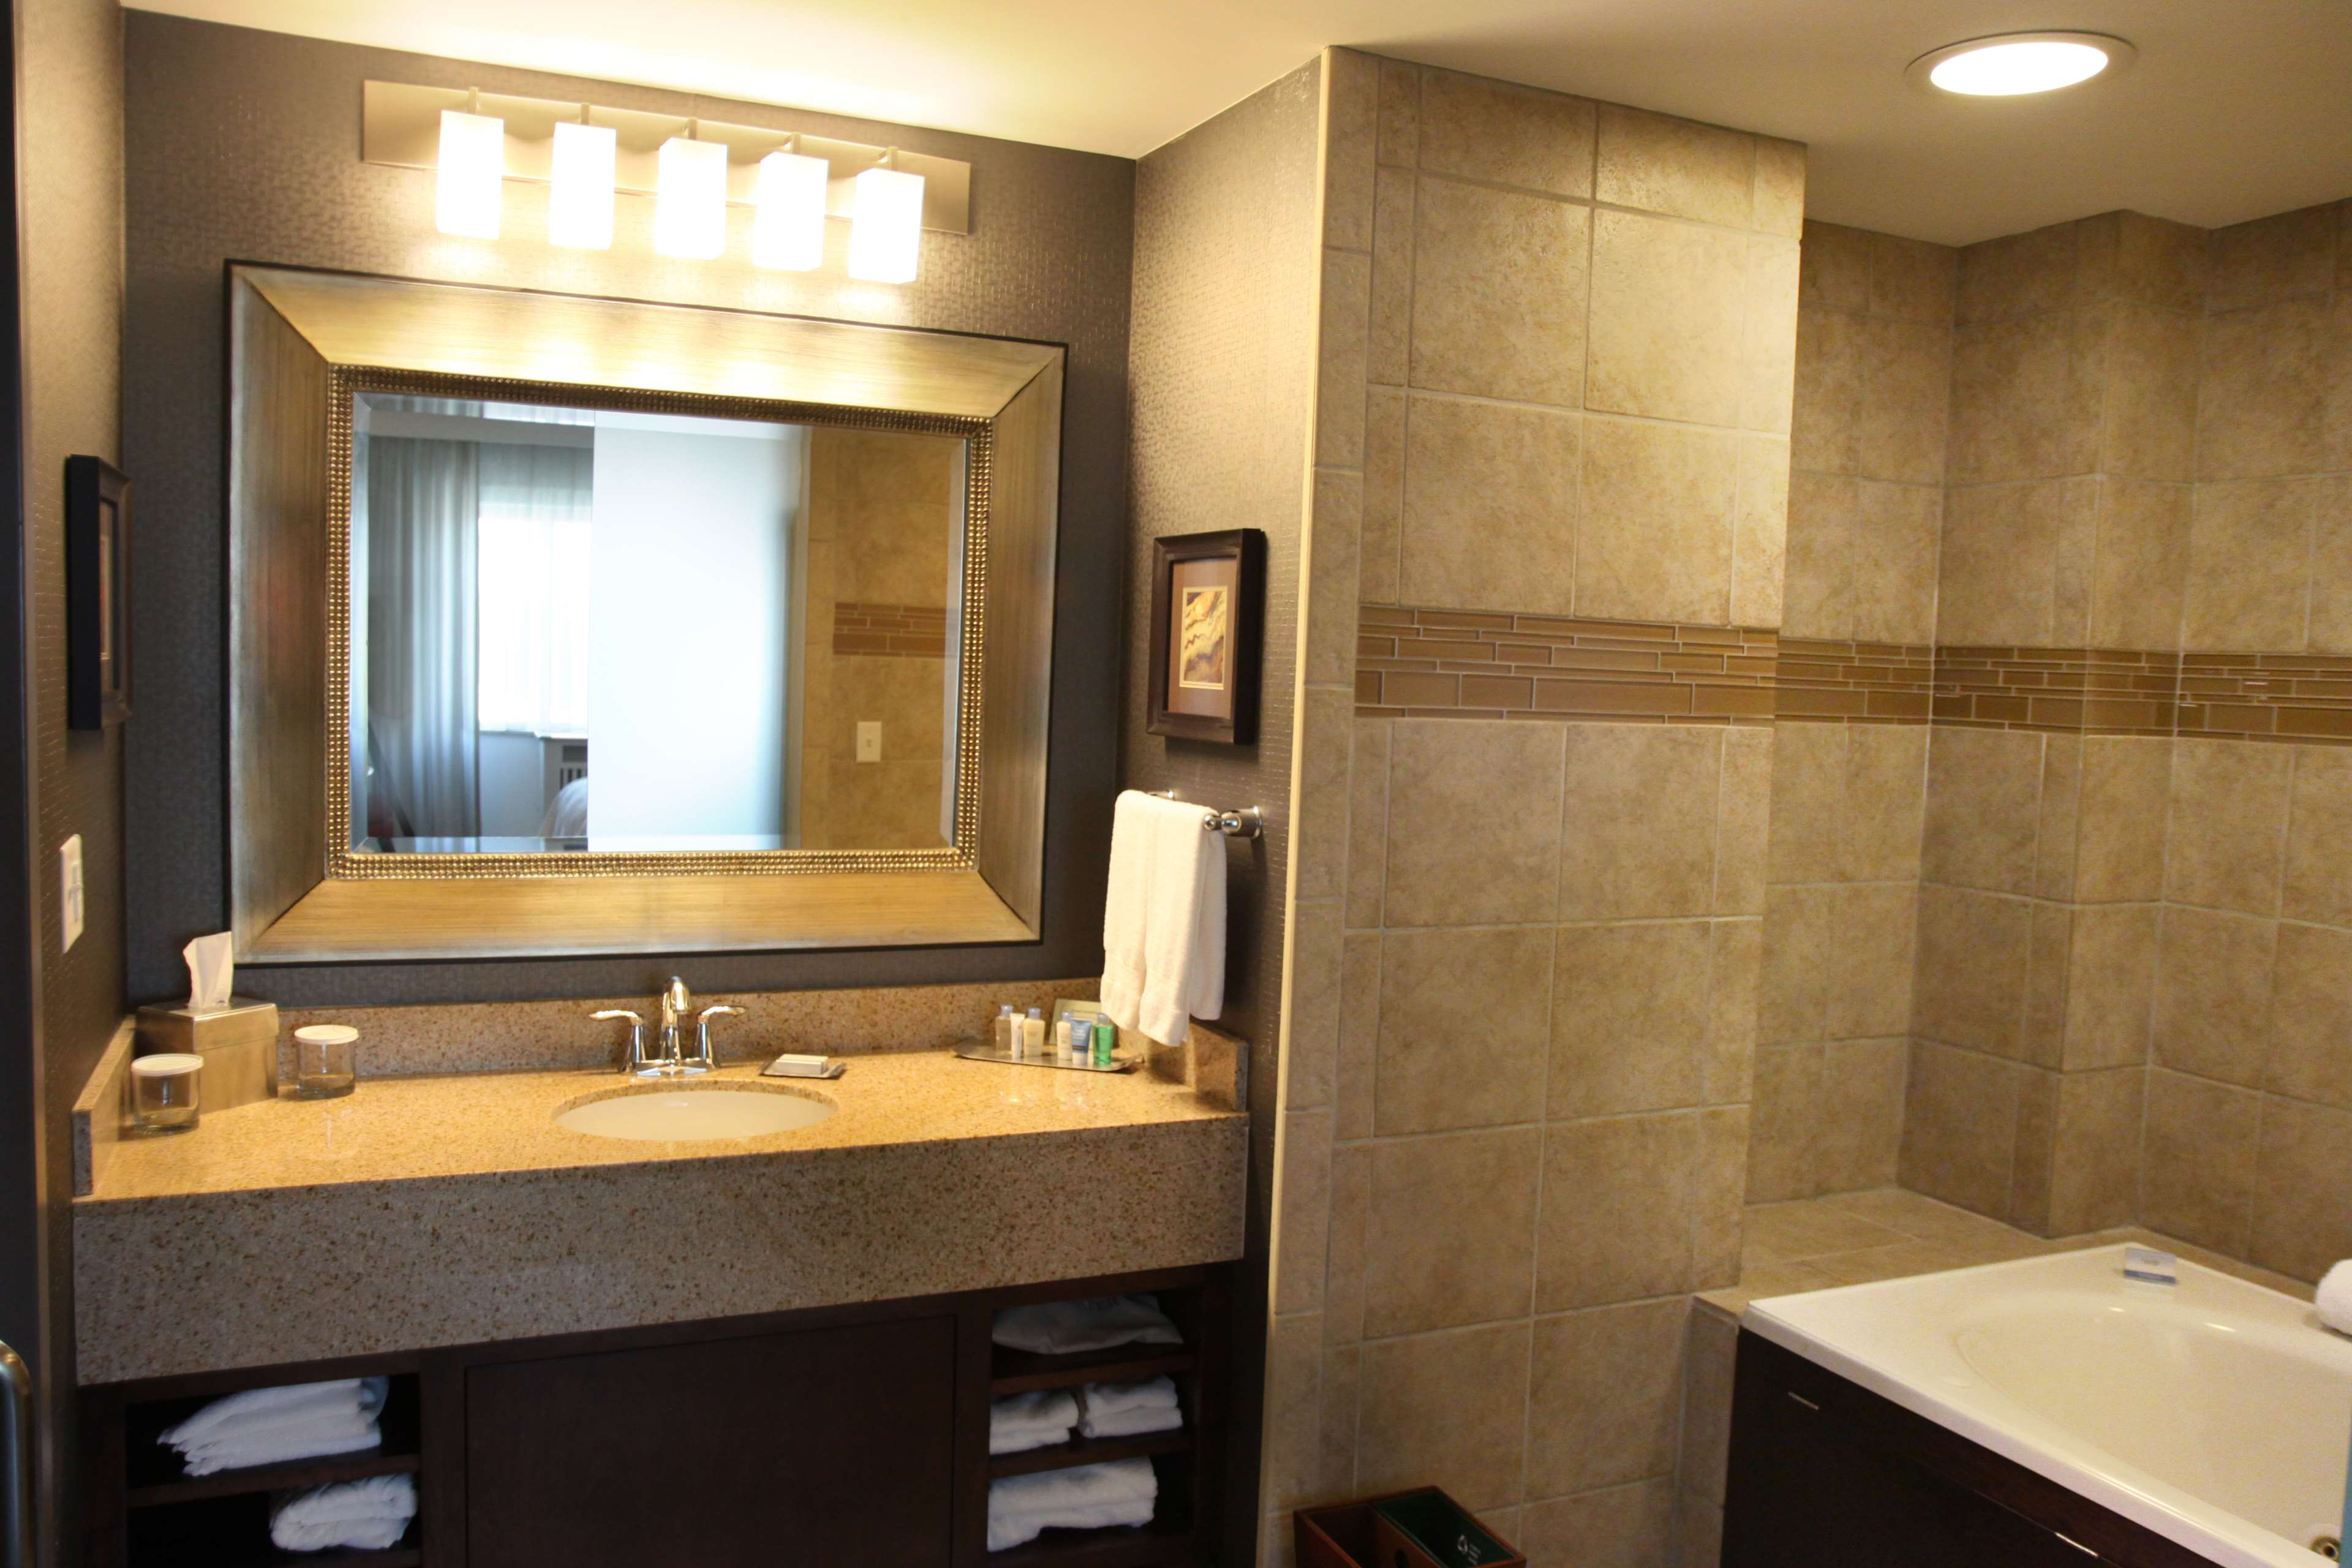 DoubleTree by Hilton Hotel Rochester - Mayo Clinic Area image 38